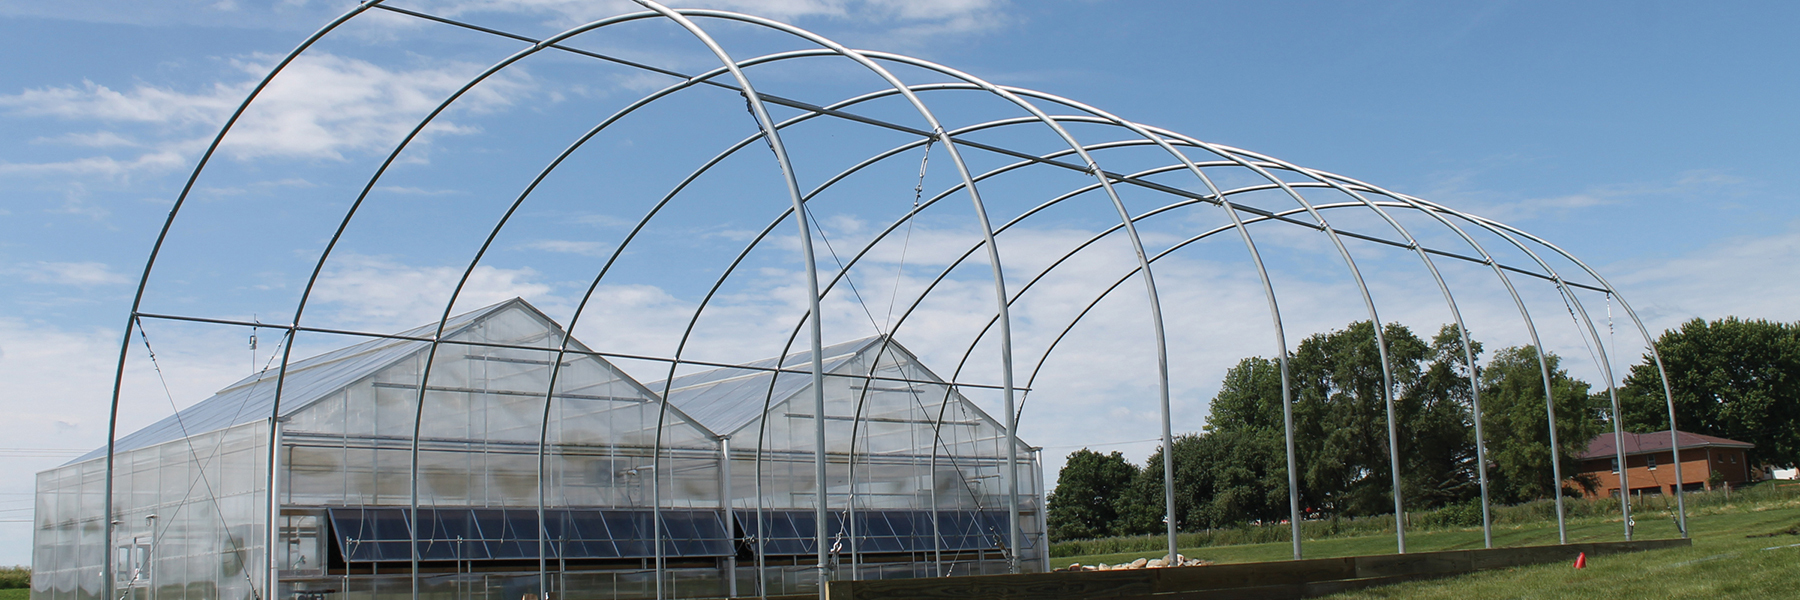 S500 tall cold frame